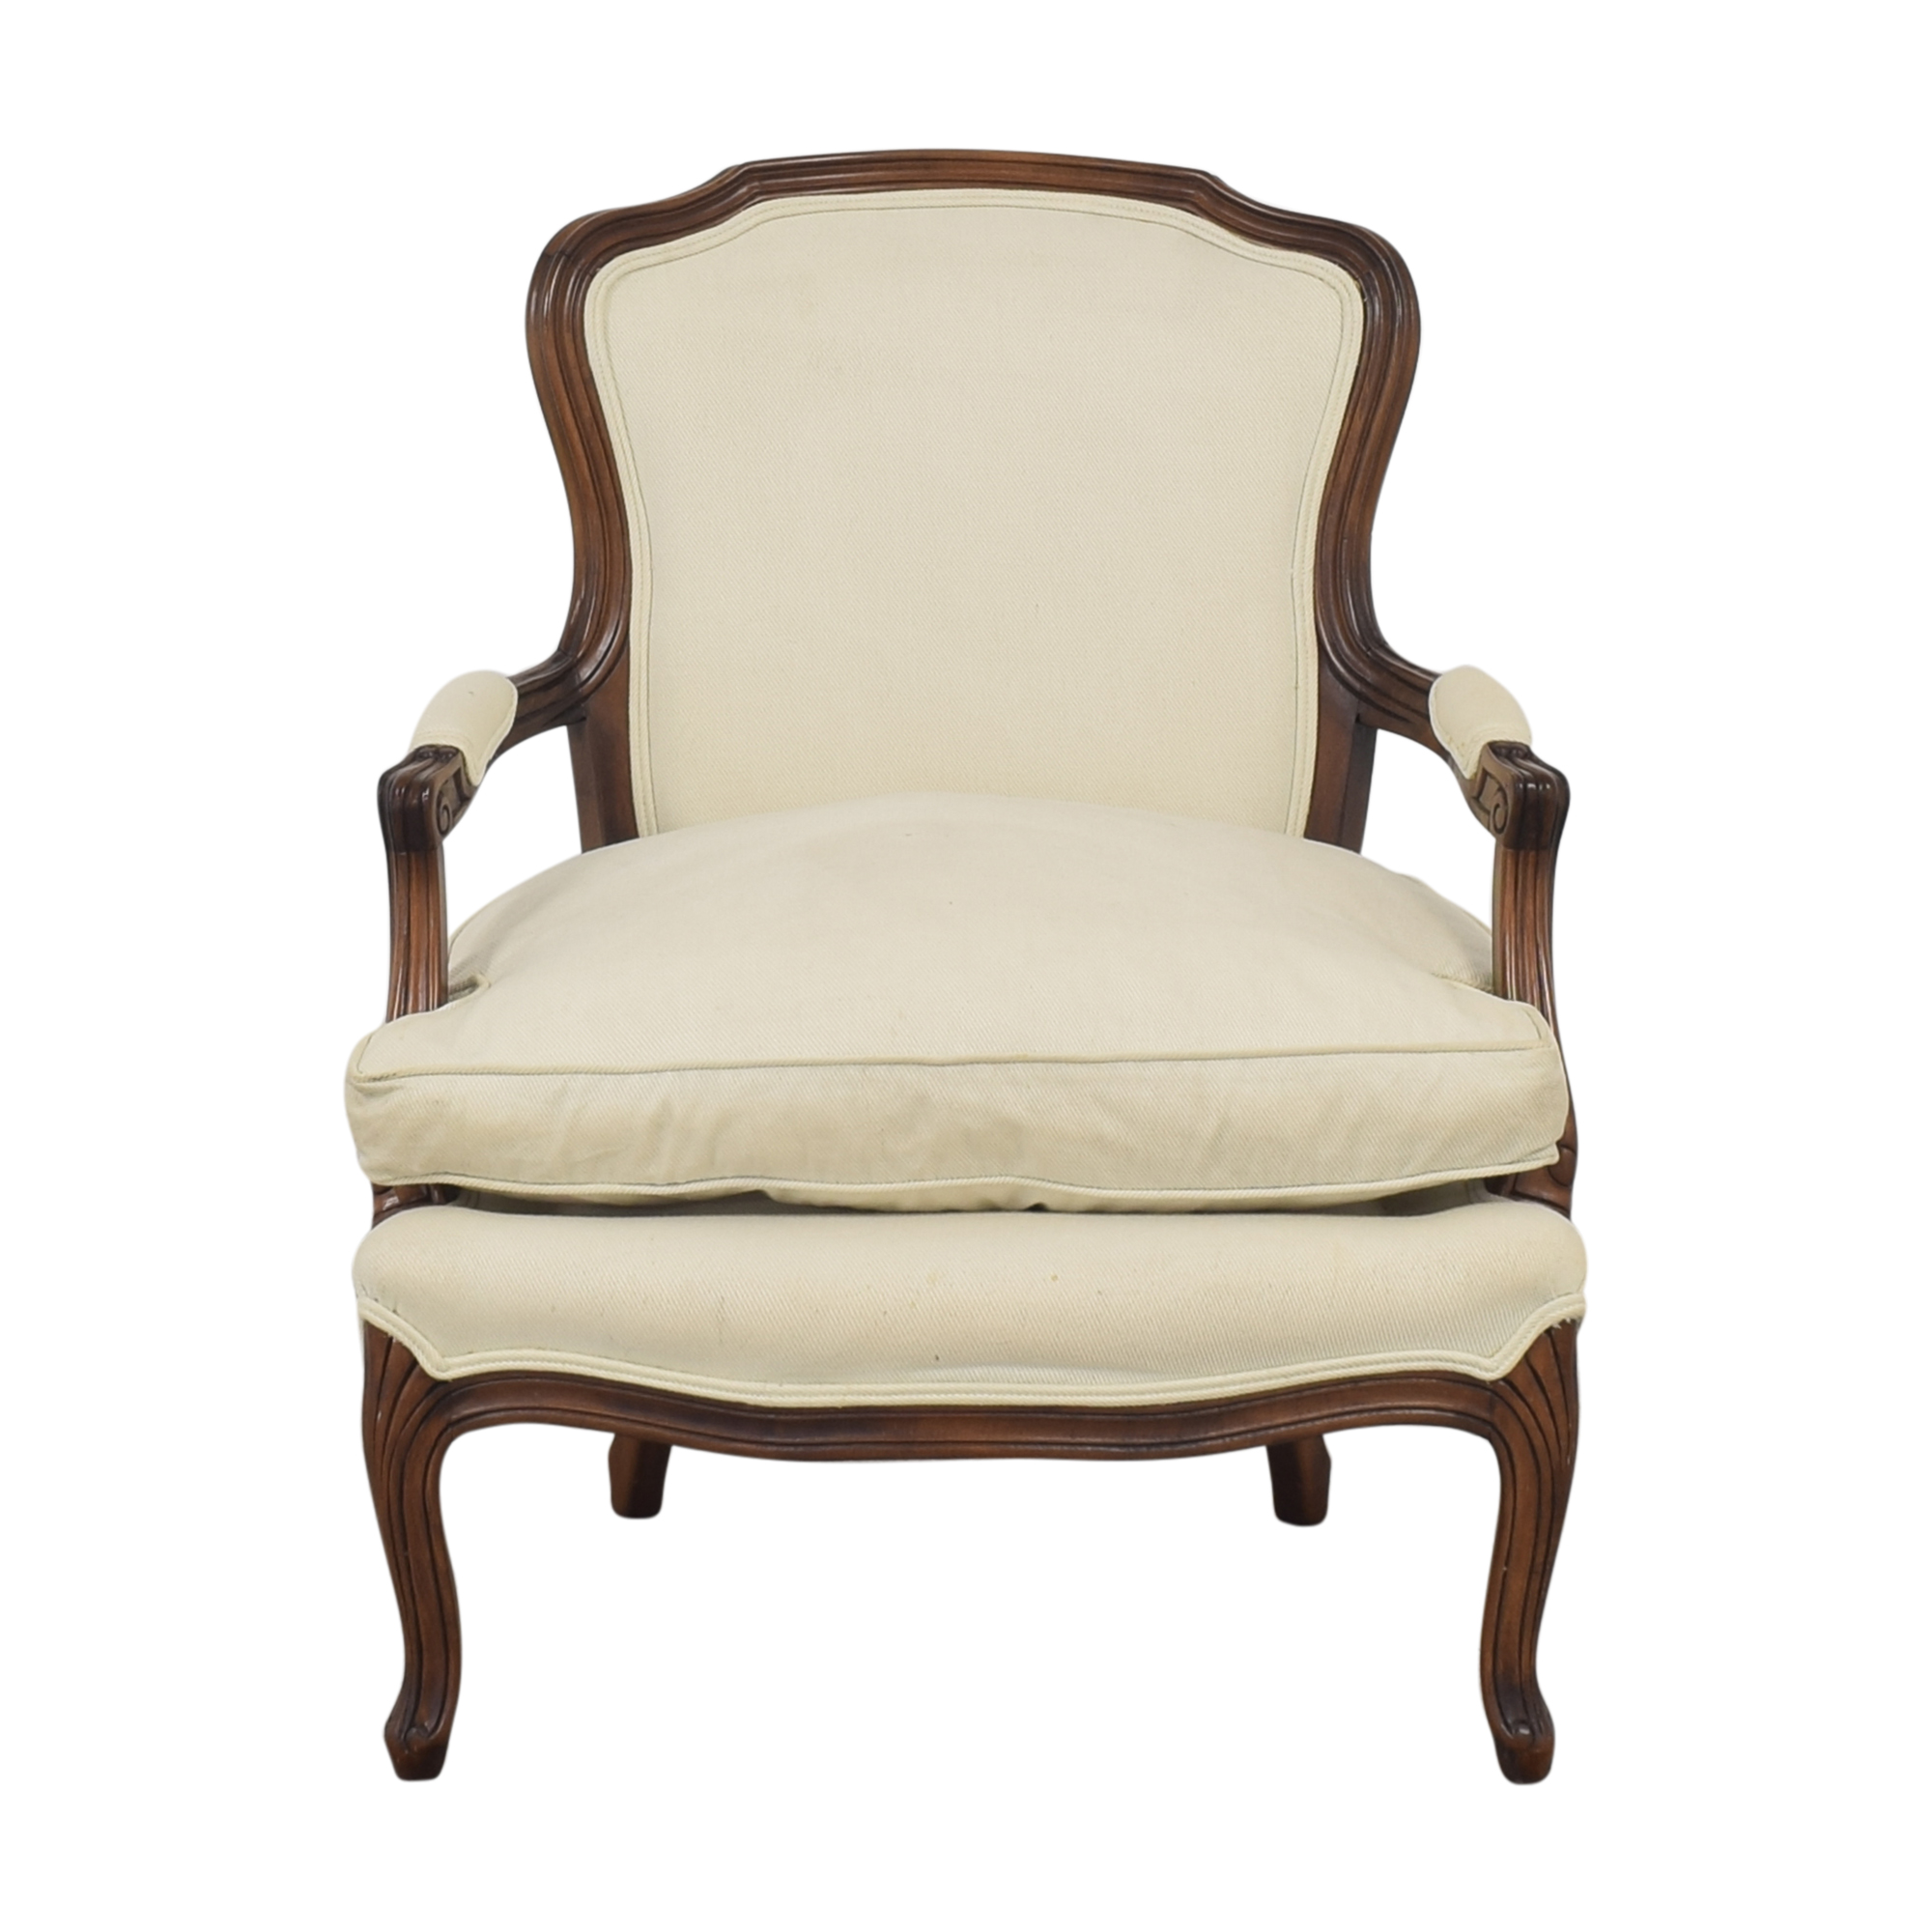 Meyer Gunther Martini Louis XV Chair Meyer Gunther Martini